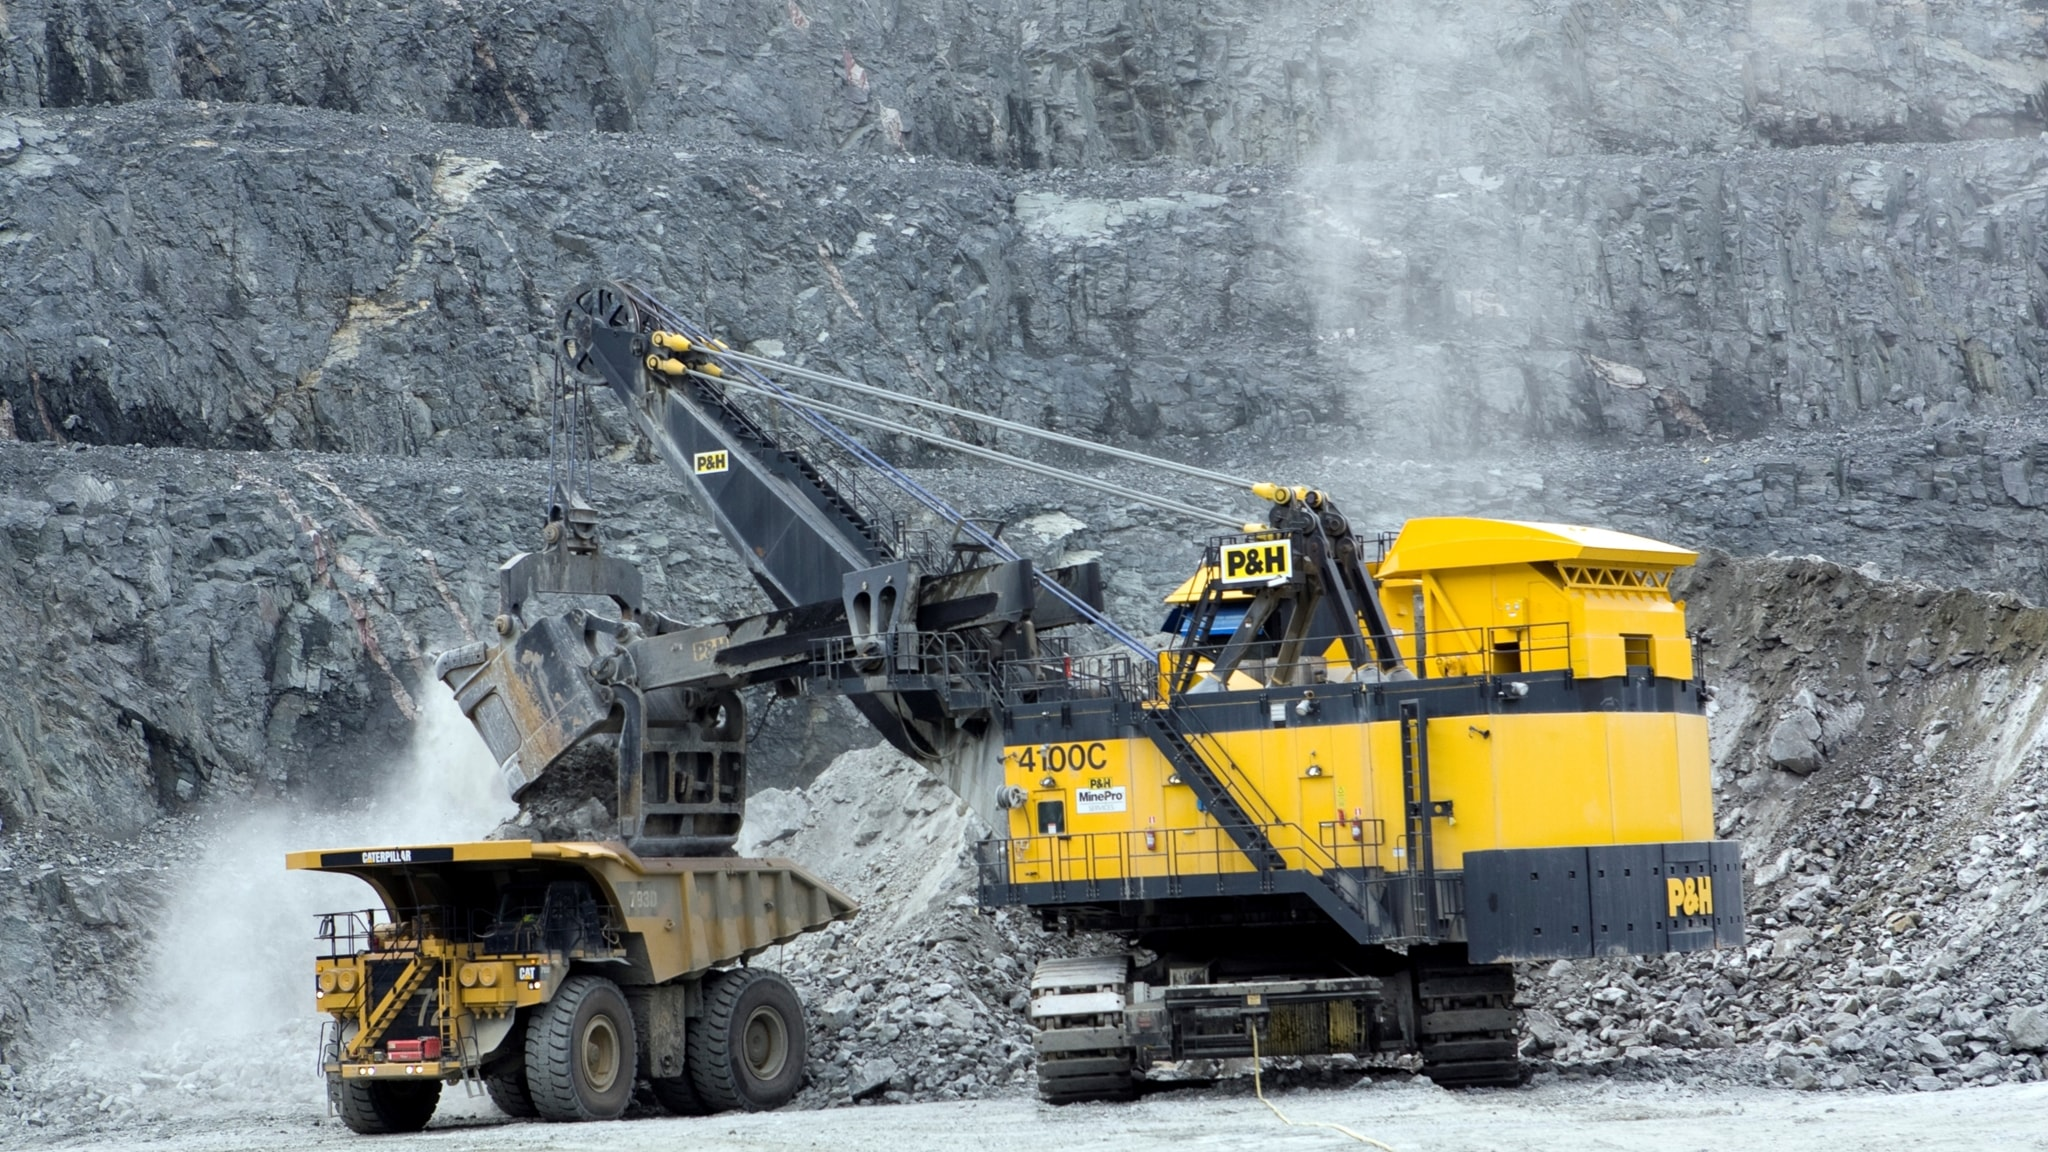 China could prevent Swedish mining investments - Radio Sweden